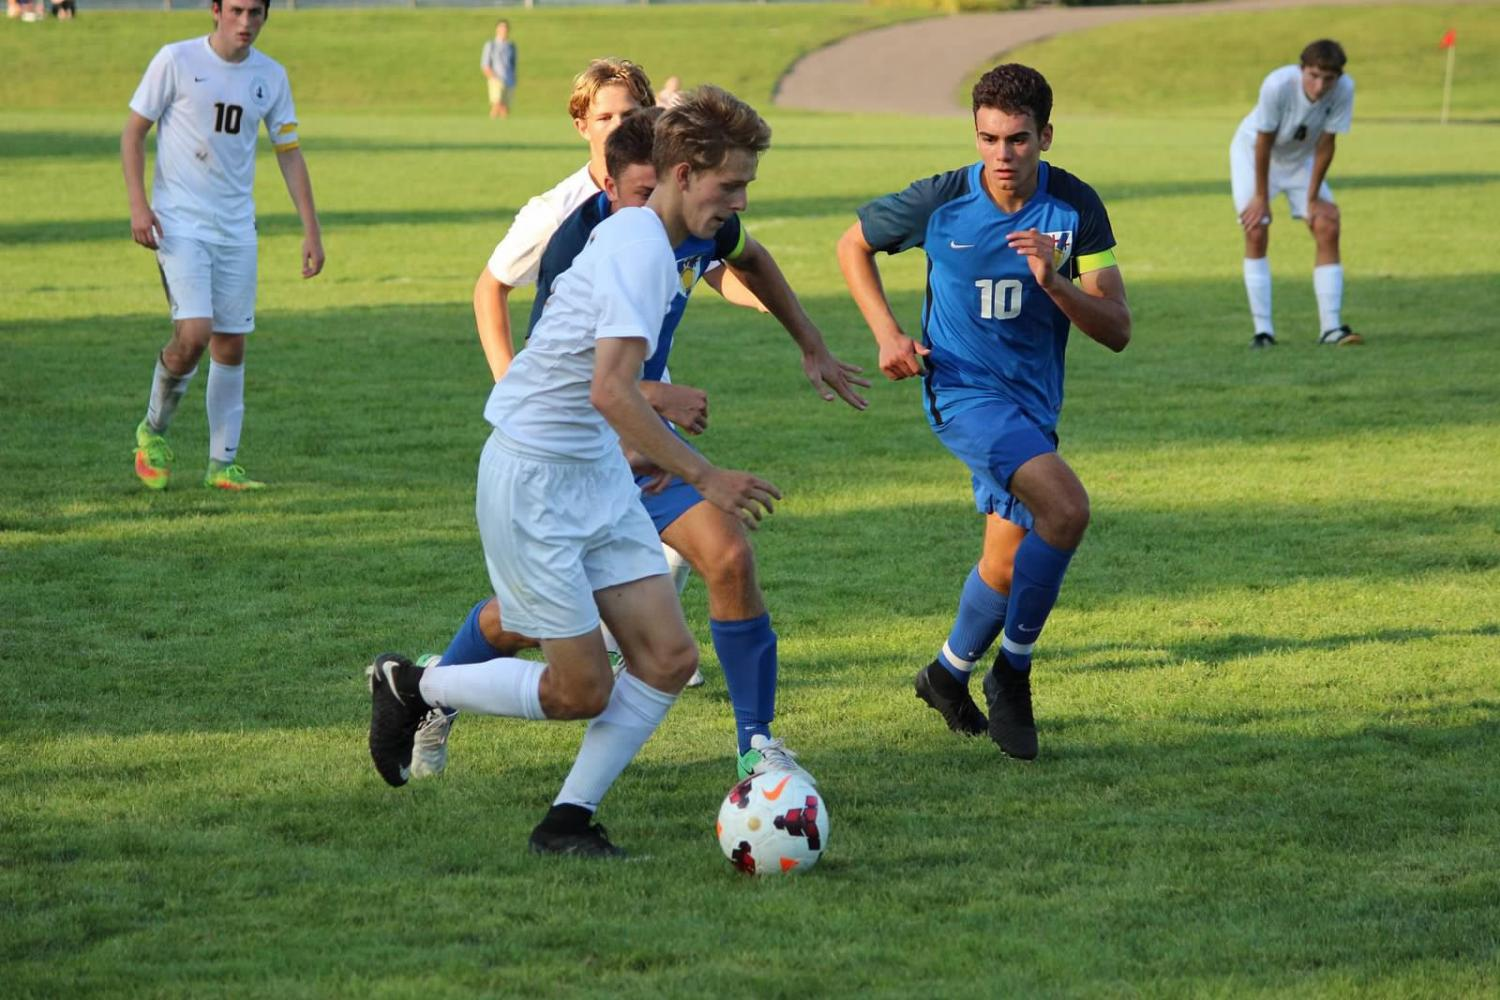 Co-captain Robin Barlett dribbles past a group of players during a game against St. Thomas Academy at Historic Lang Field.